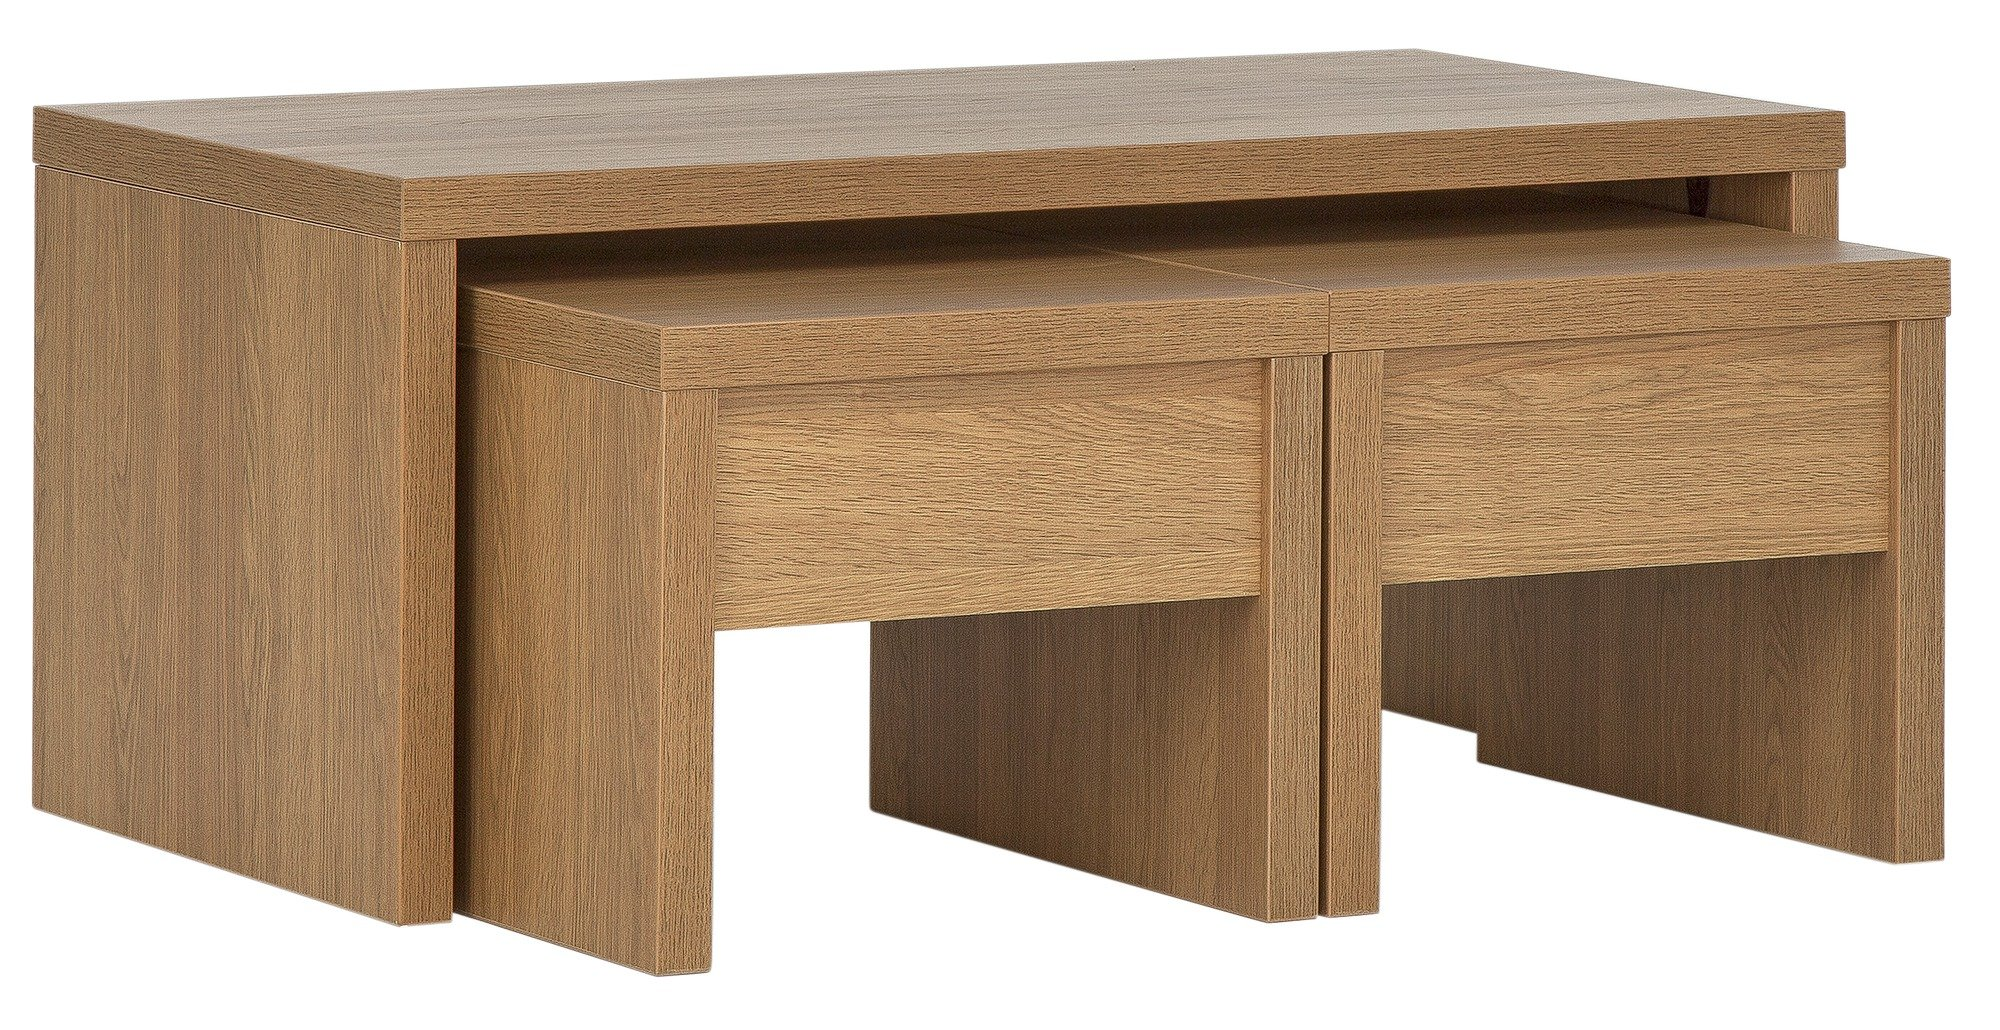 Buy Argos Home Coffee Table Set With 2 Side Tables | Coffee Tables | Argos